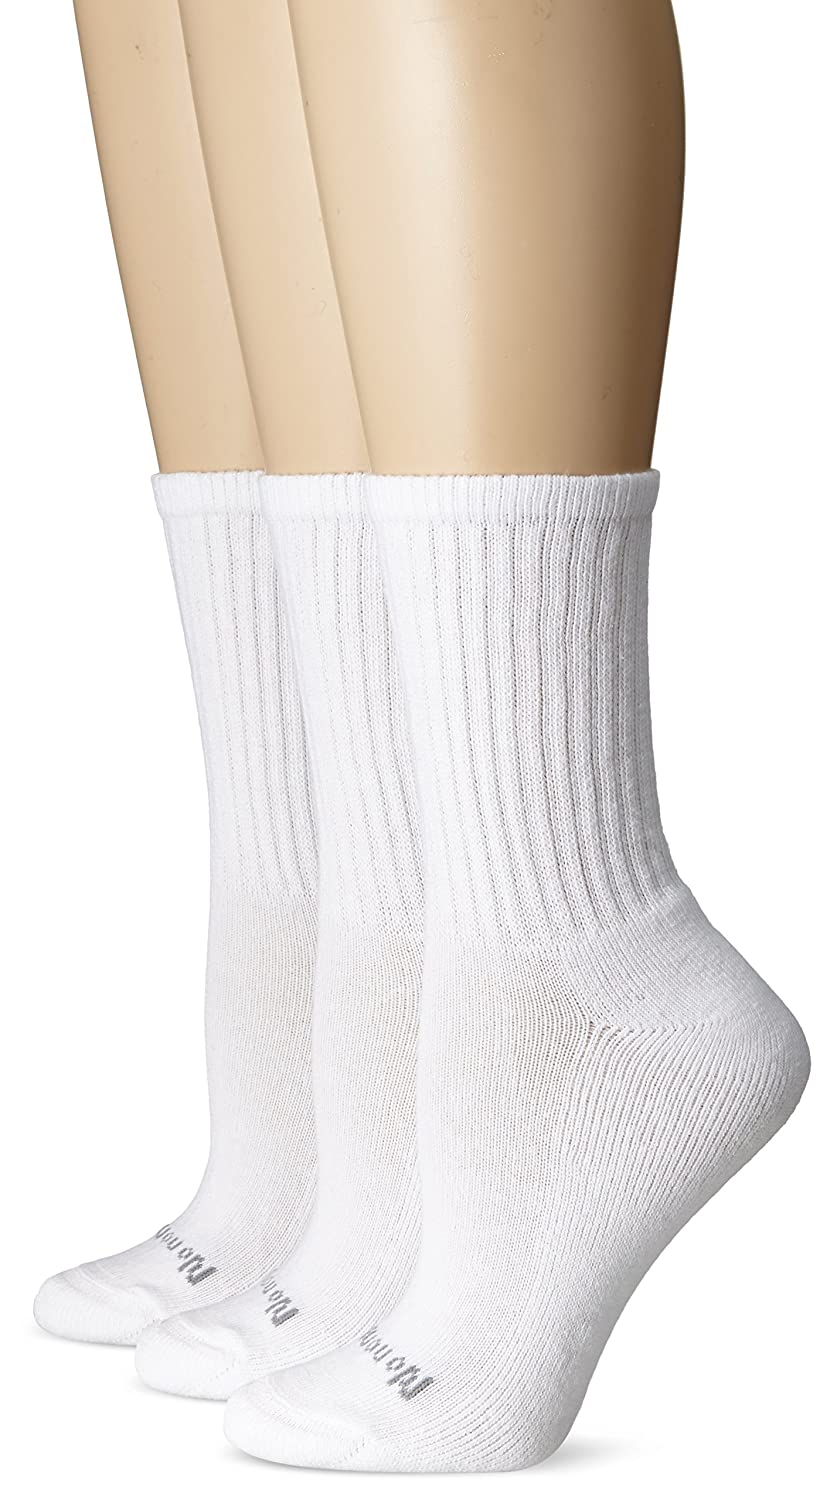 No Nonsense Womens Ahh Said The Foot Cushioned Crew 3-Pack White One Size No Nonsense Women/'s Hosiery NS5032